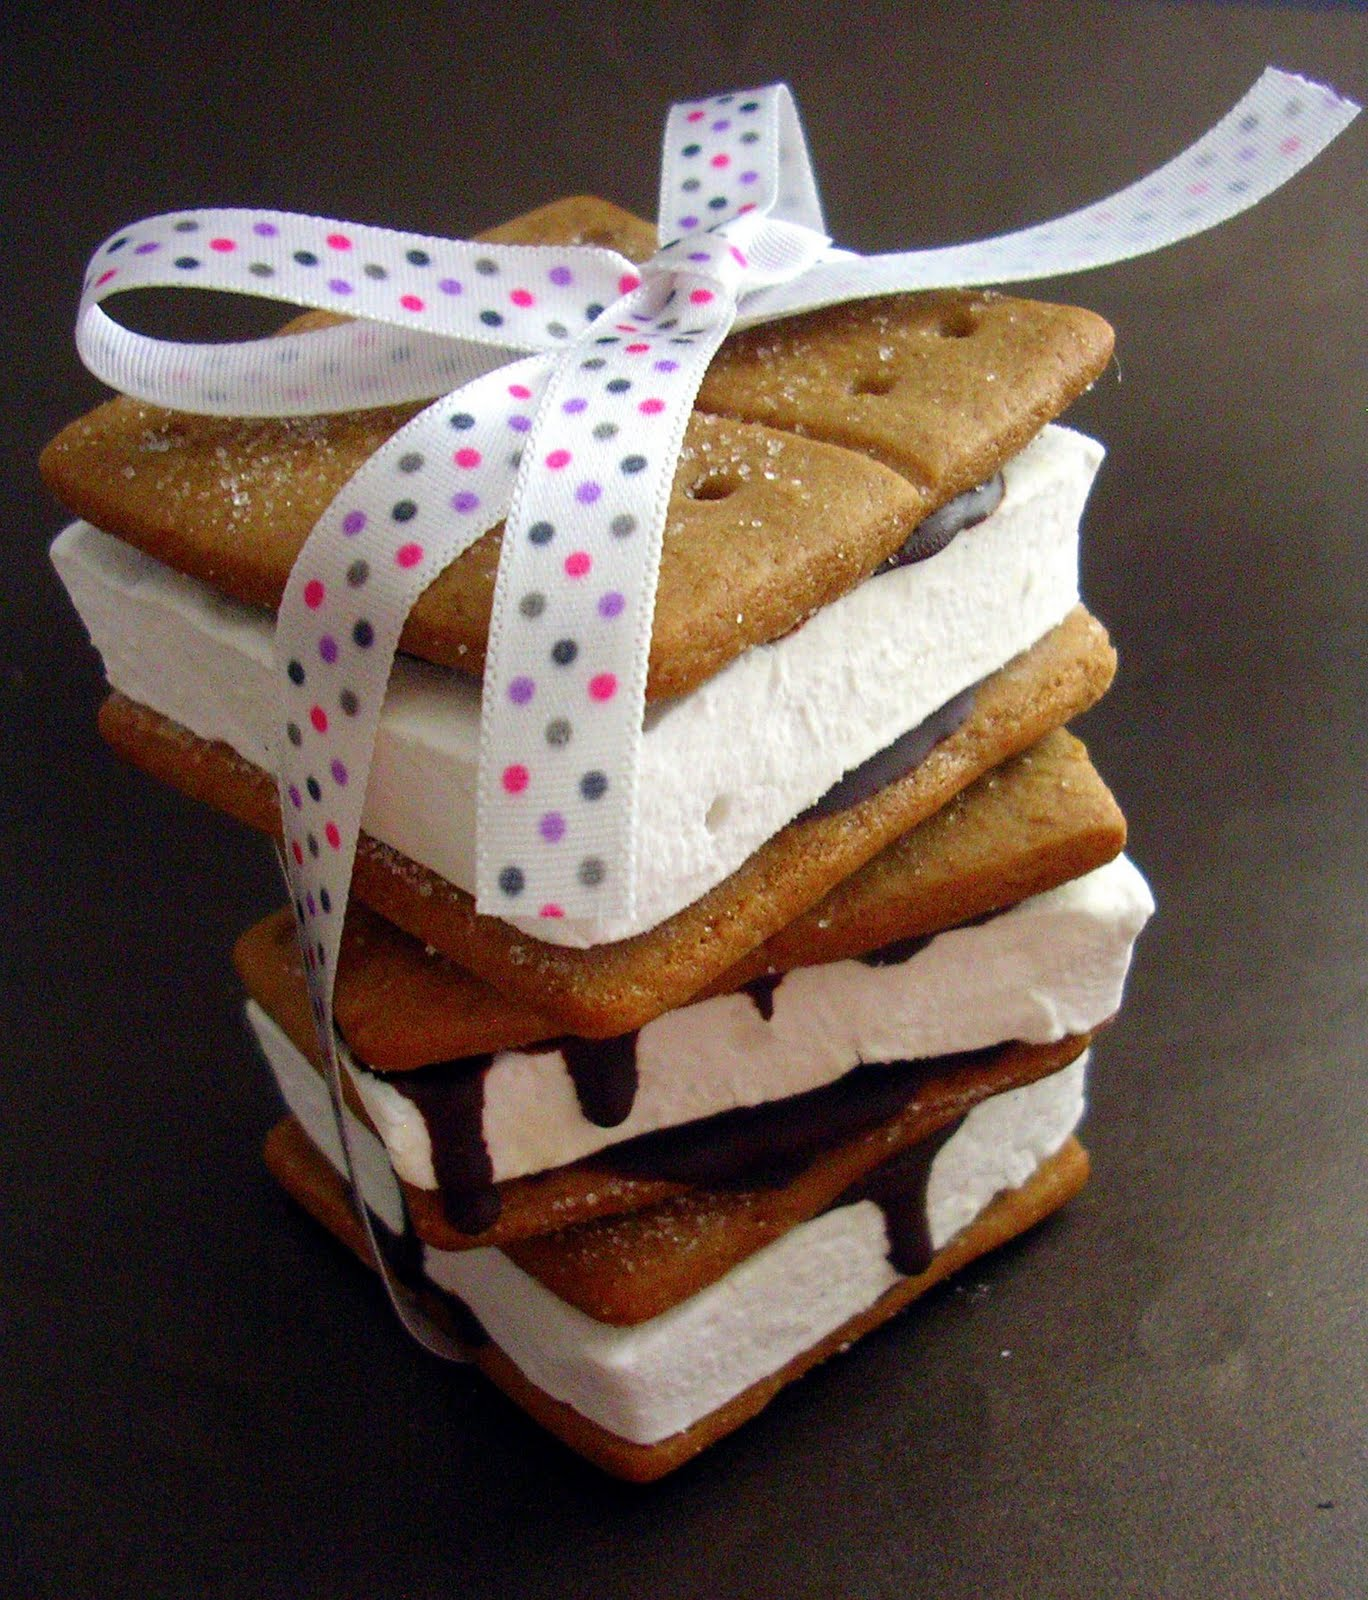 The Busty Baker: Homemade S'mores